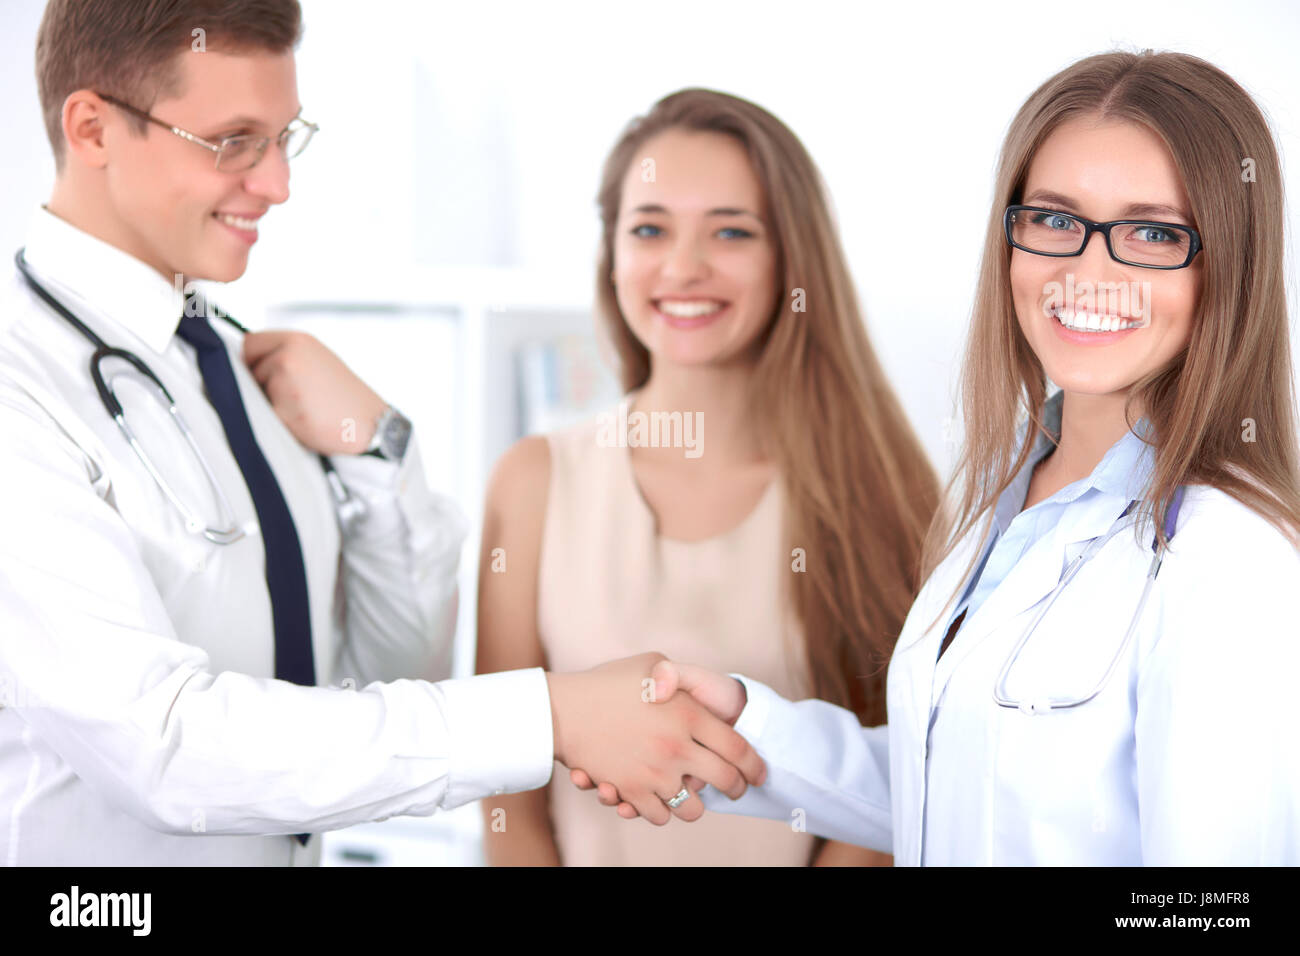 Two doctors and a patient